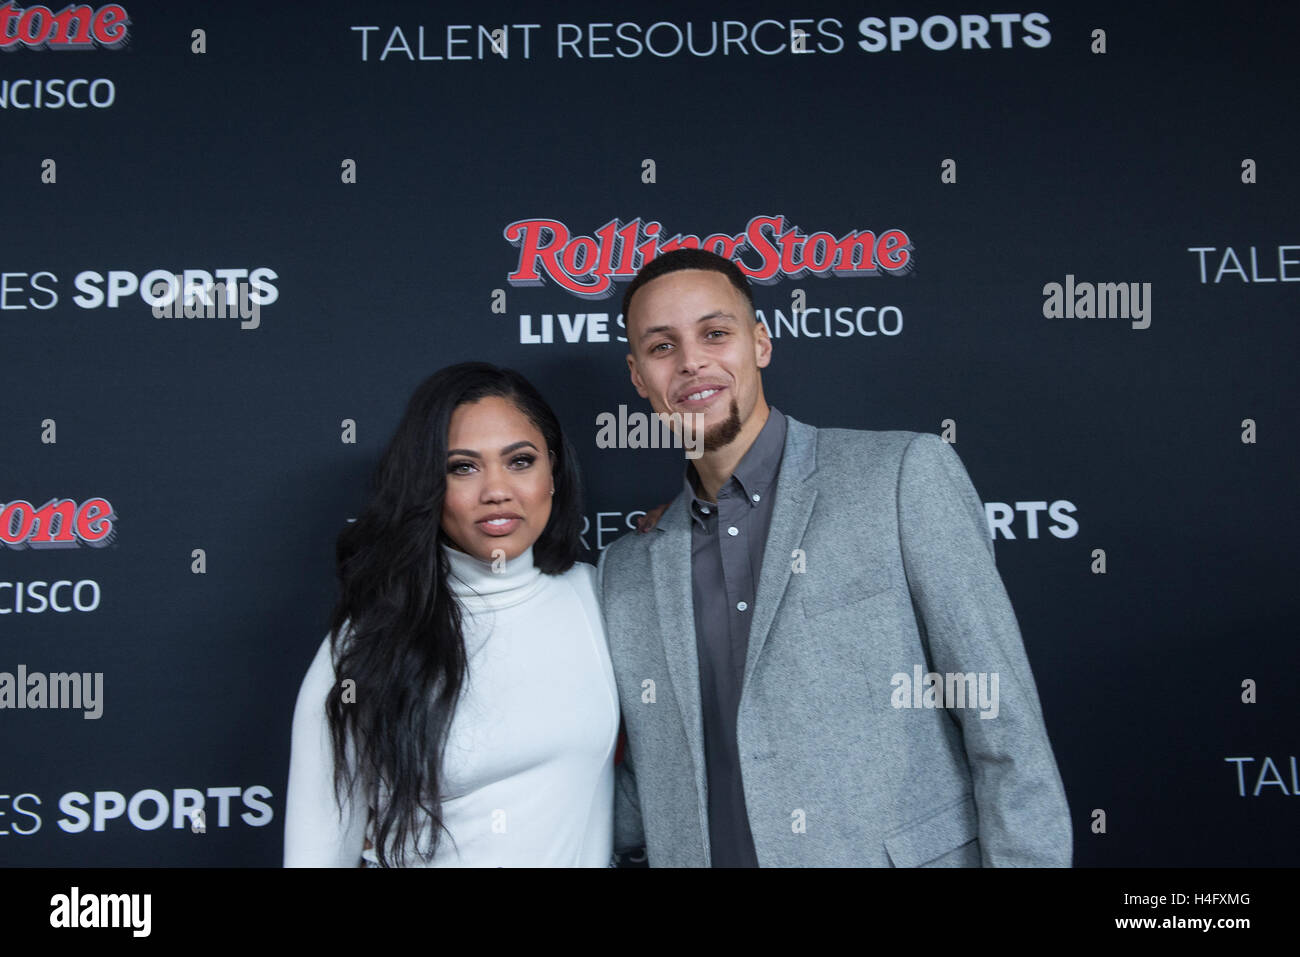 Stephen Curry And Wife Ayesha Walk The Red Carpet At Rolling Stone Party